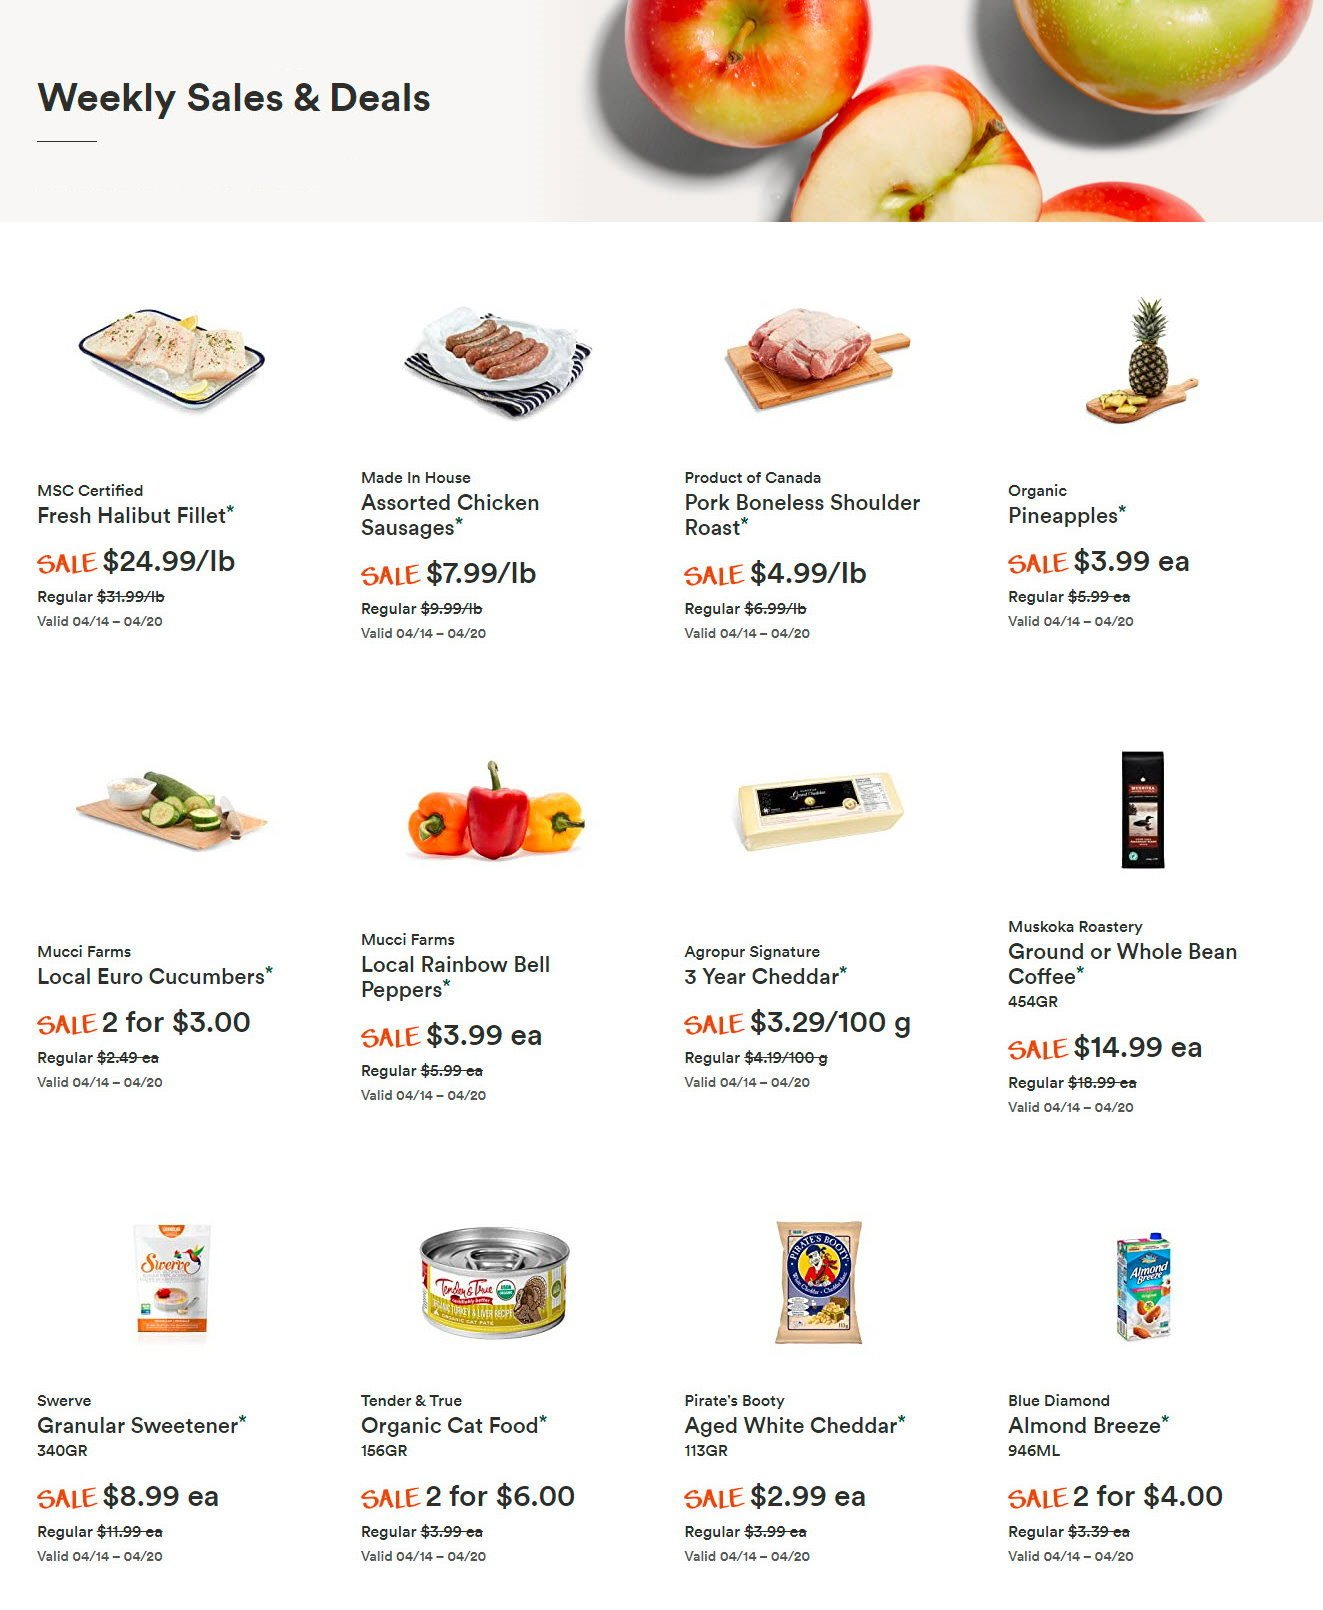 Whole Foods Market - Weekly Flyer Specials